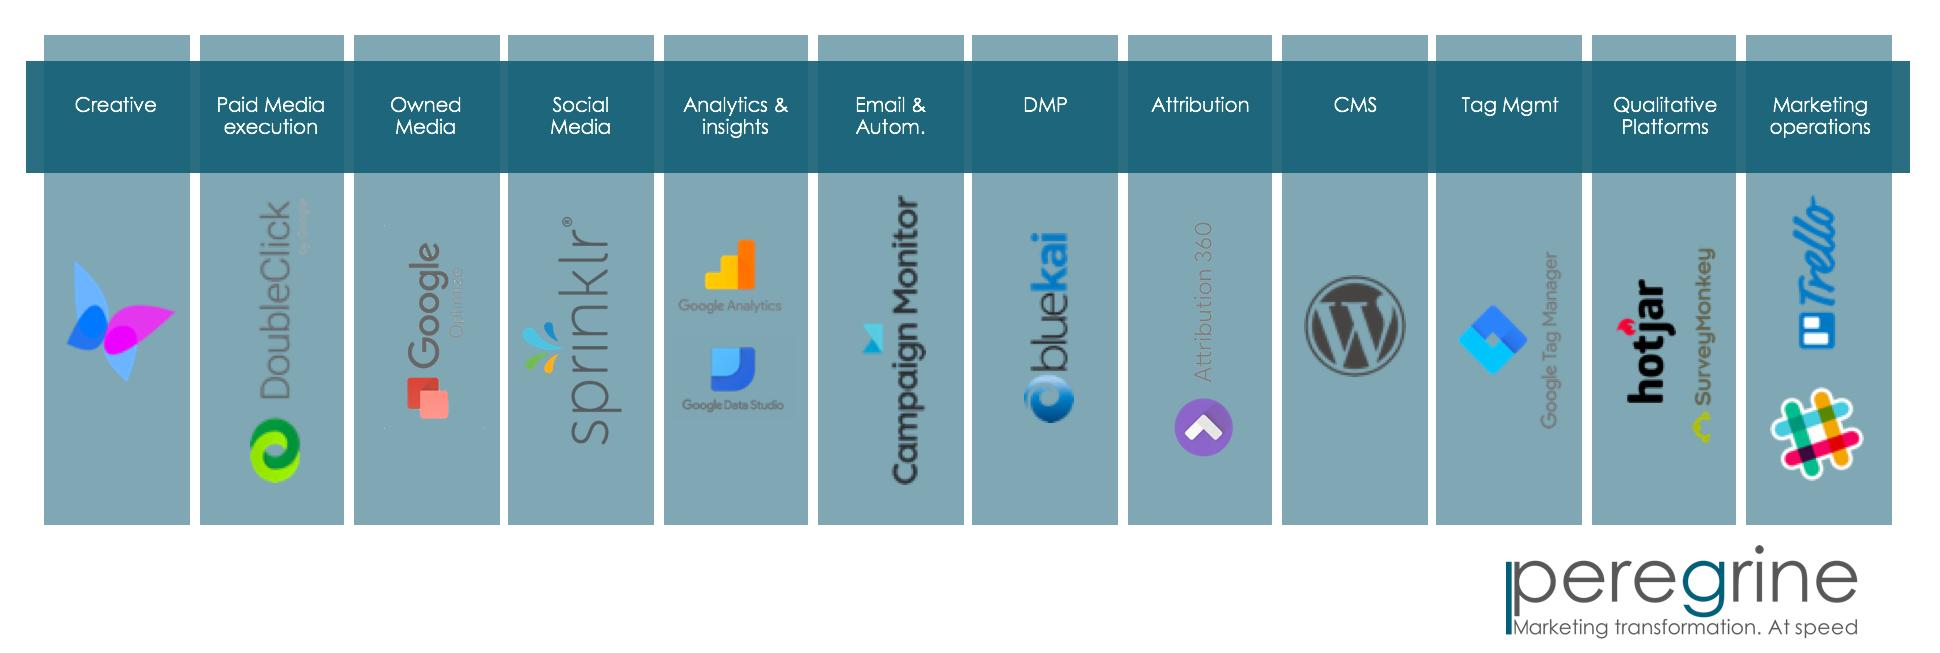 (click to enlarge) Tech stack example tailored towards specific client needs & business goals